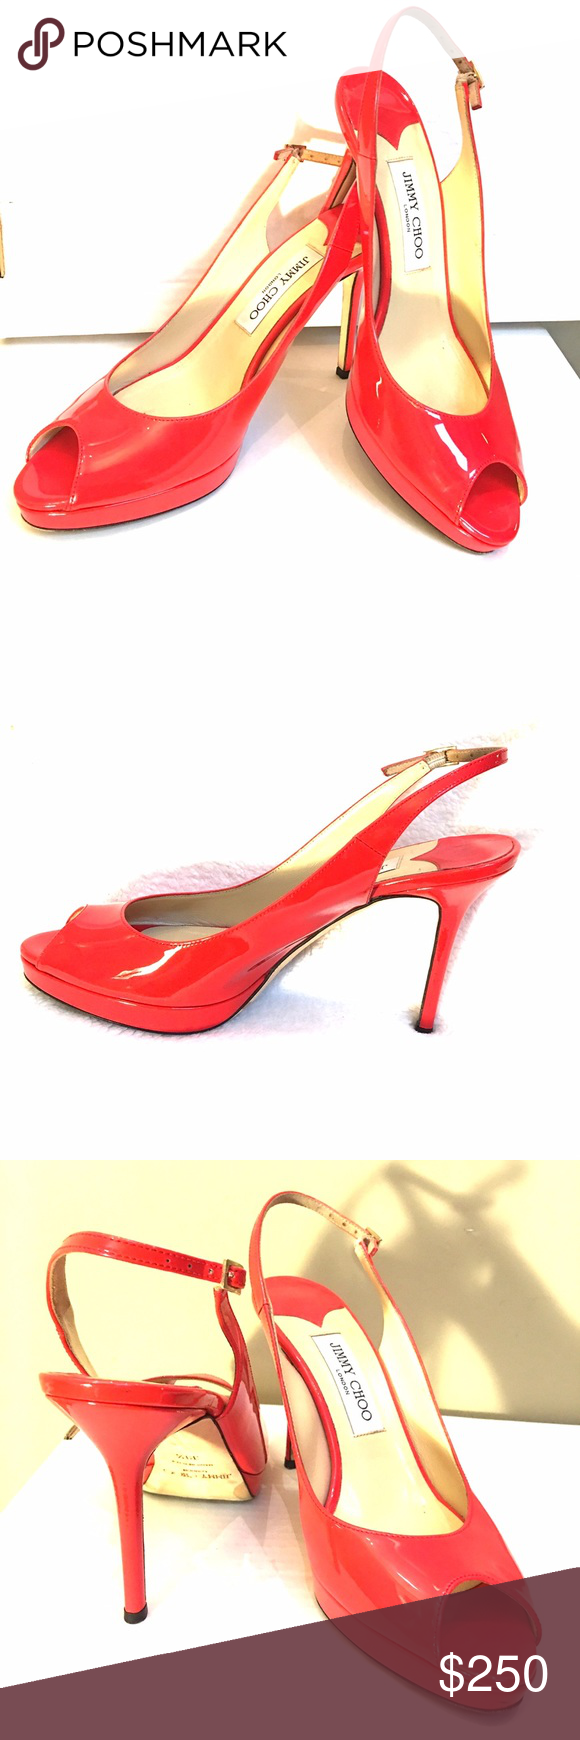 """Jimmy Choo Red Shoes Fire engine red, sexy,  open toe, 4"""" heel. Gently worn, very tiny nick on left heel. Jimmy Choo Shoes Heels"""